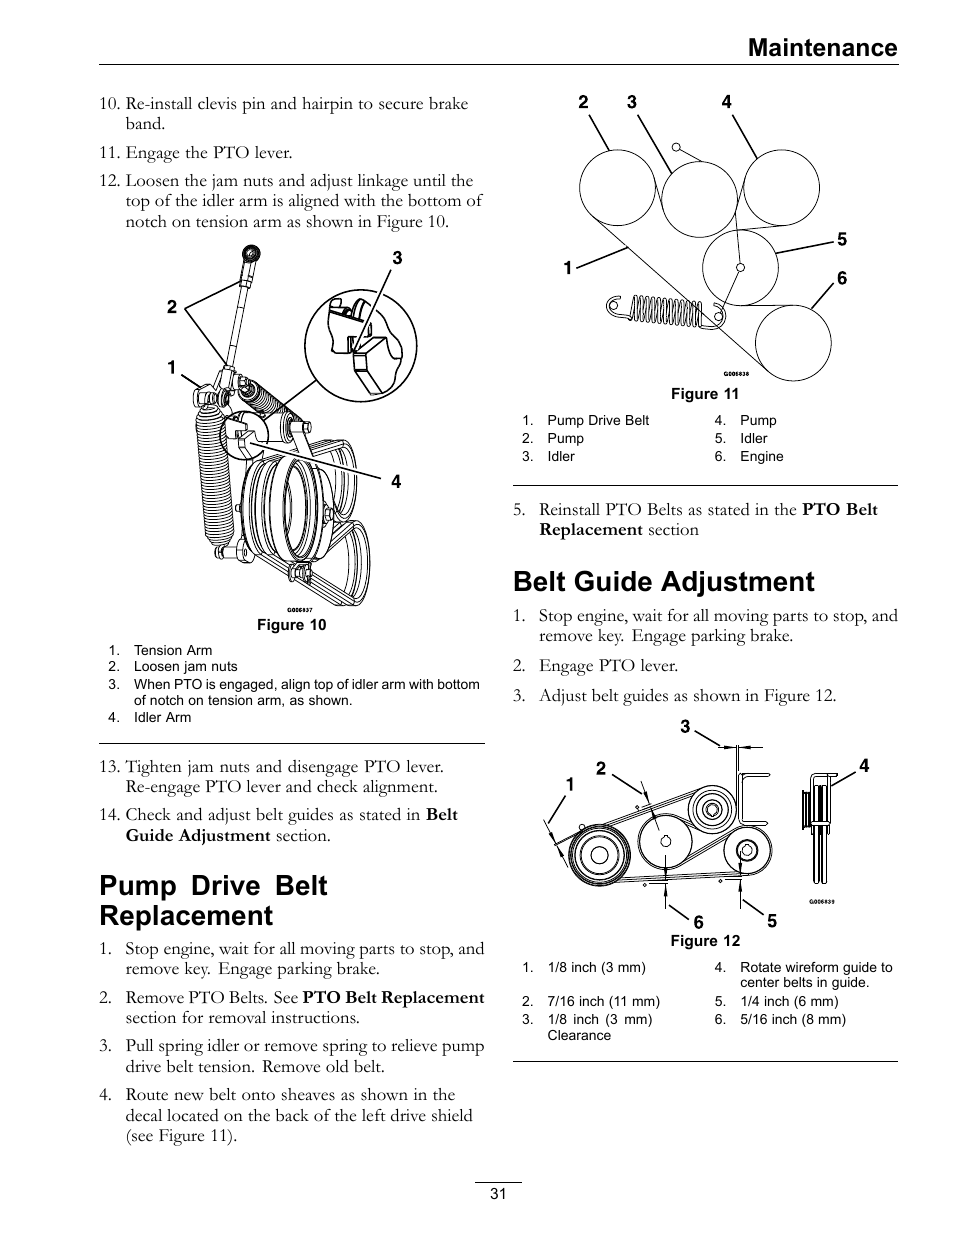 Honda 1 8 Belt Diagram Manual Guide